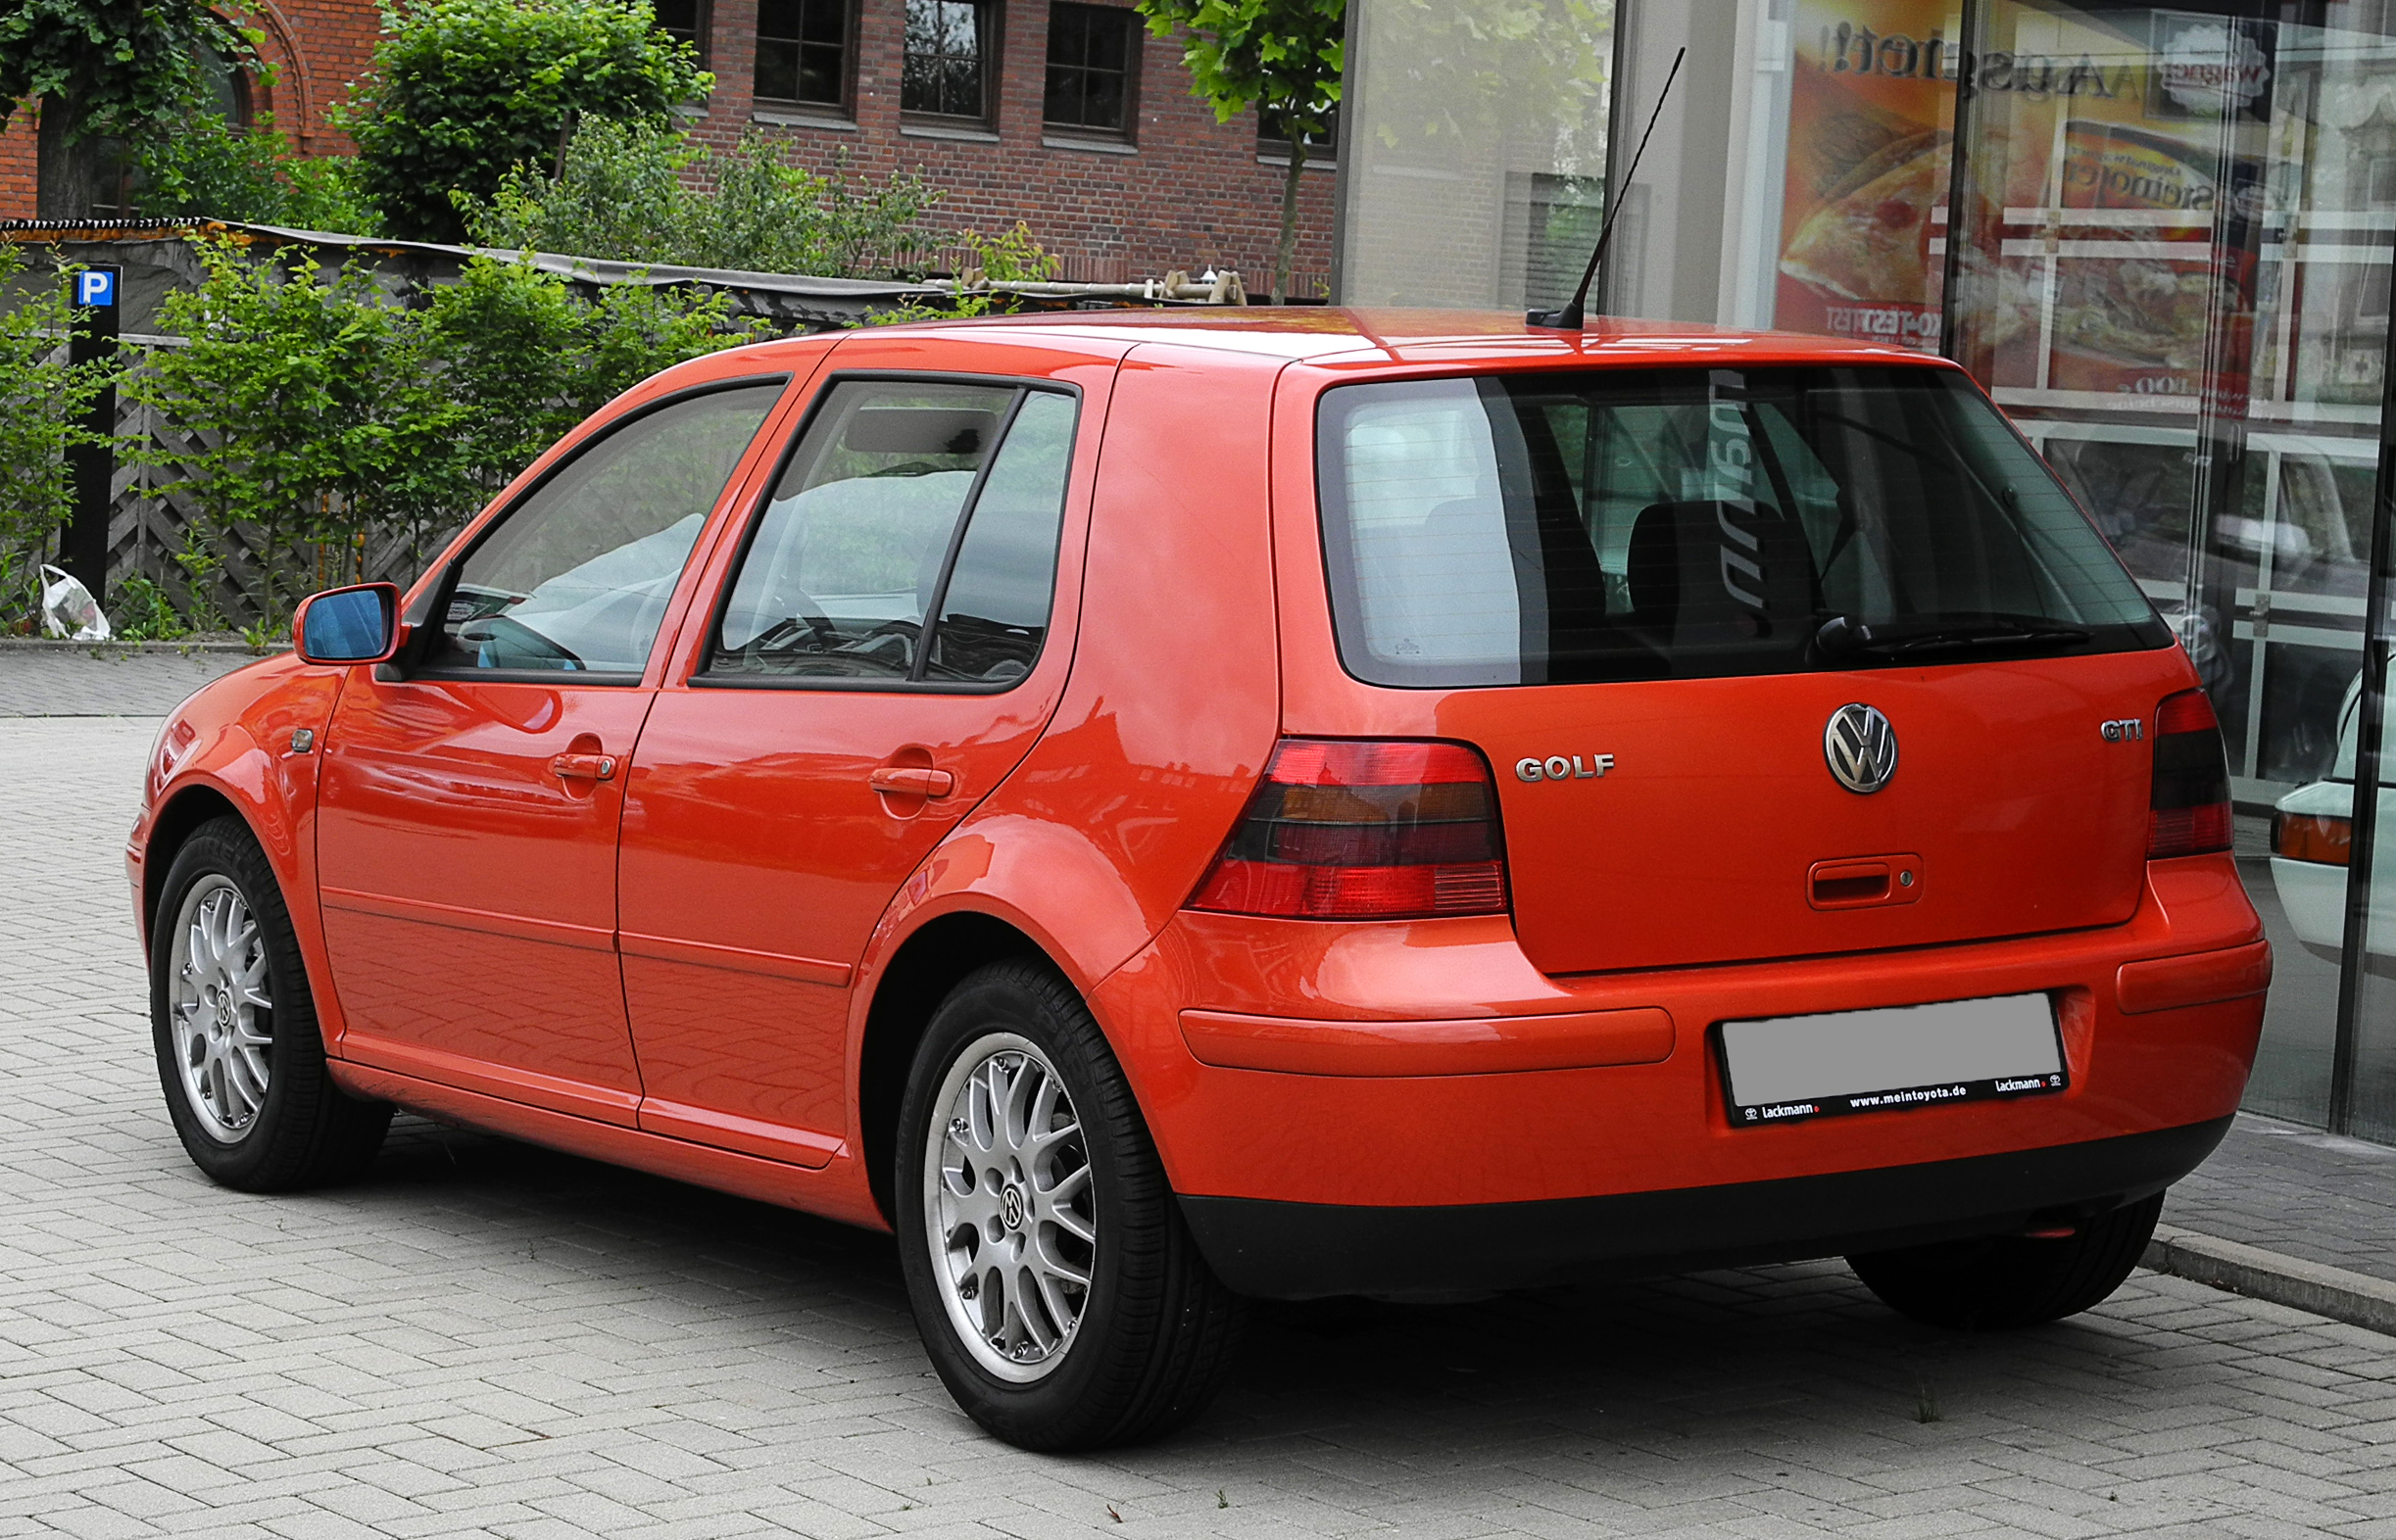 file vw golf gti iv heckansicht 13 juni 2011 wikimedia commons. Black Bedroom Furniture Sets. Home Design Ideas